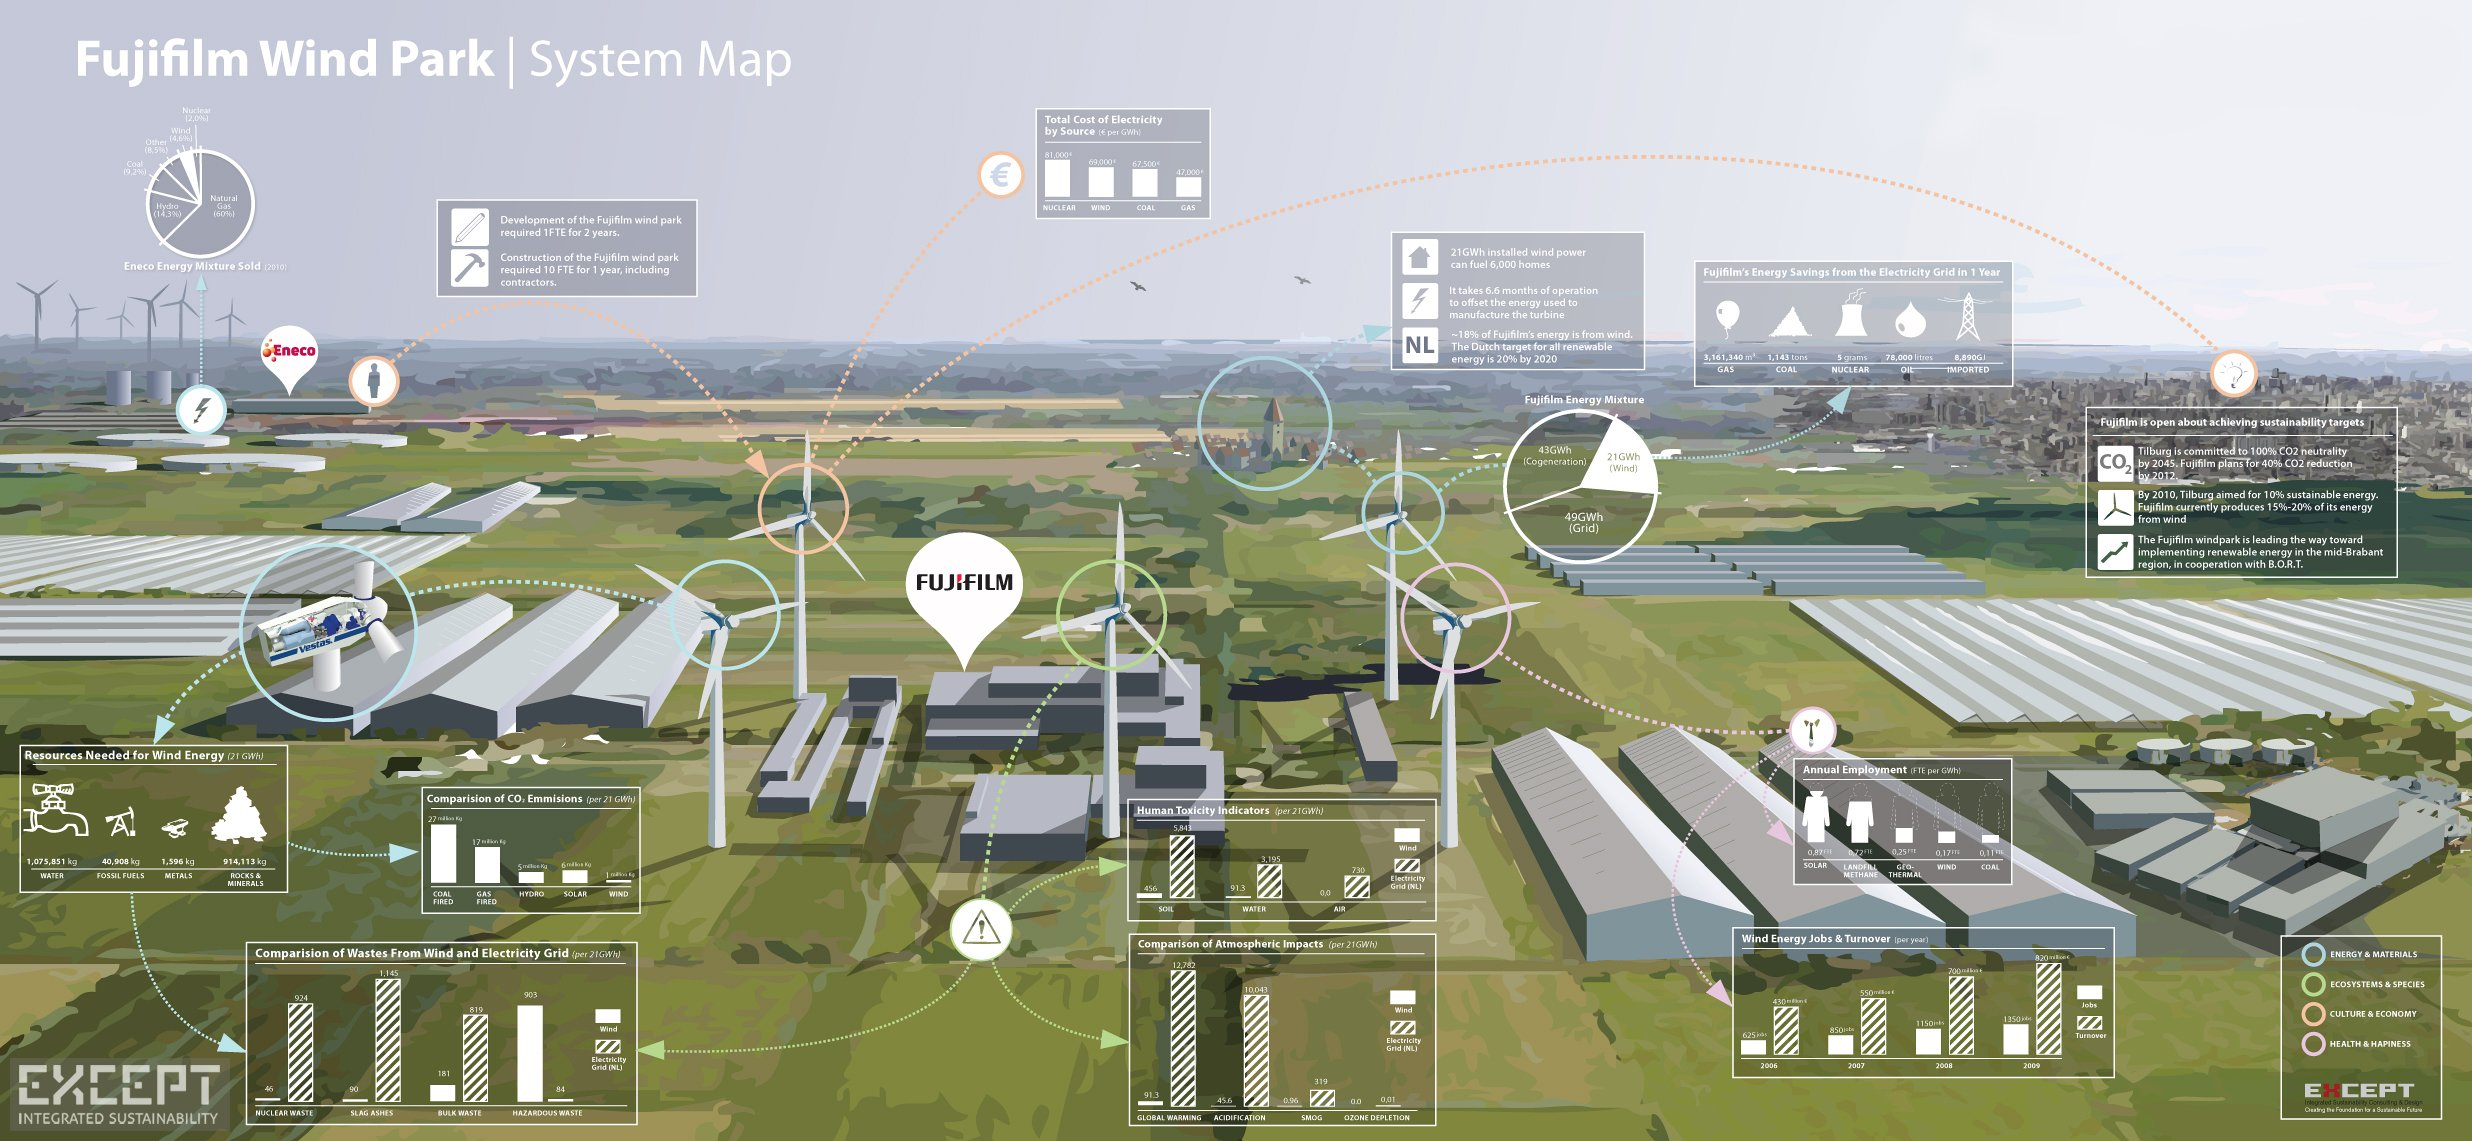 Systemic impacts of an industrial wind park  - Mapping some of the key system-wide impacts of a wind park